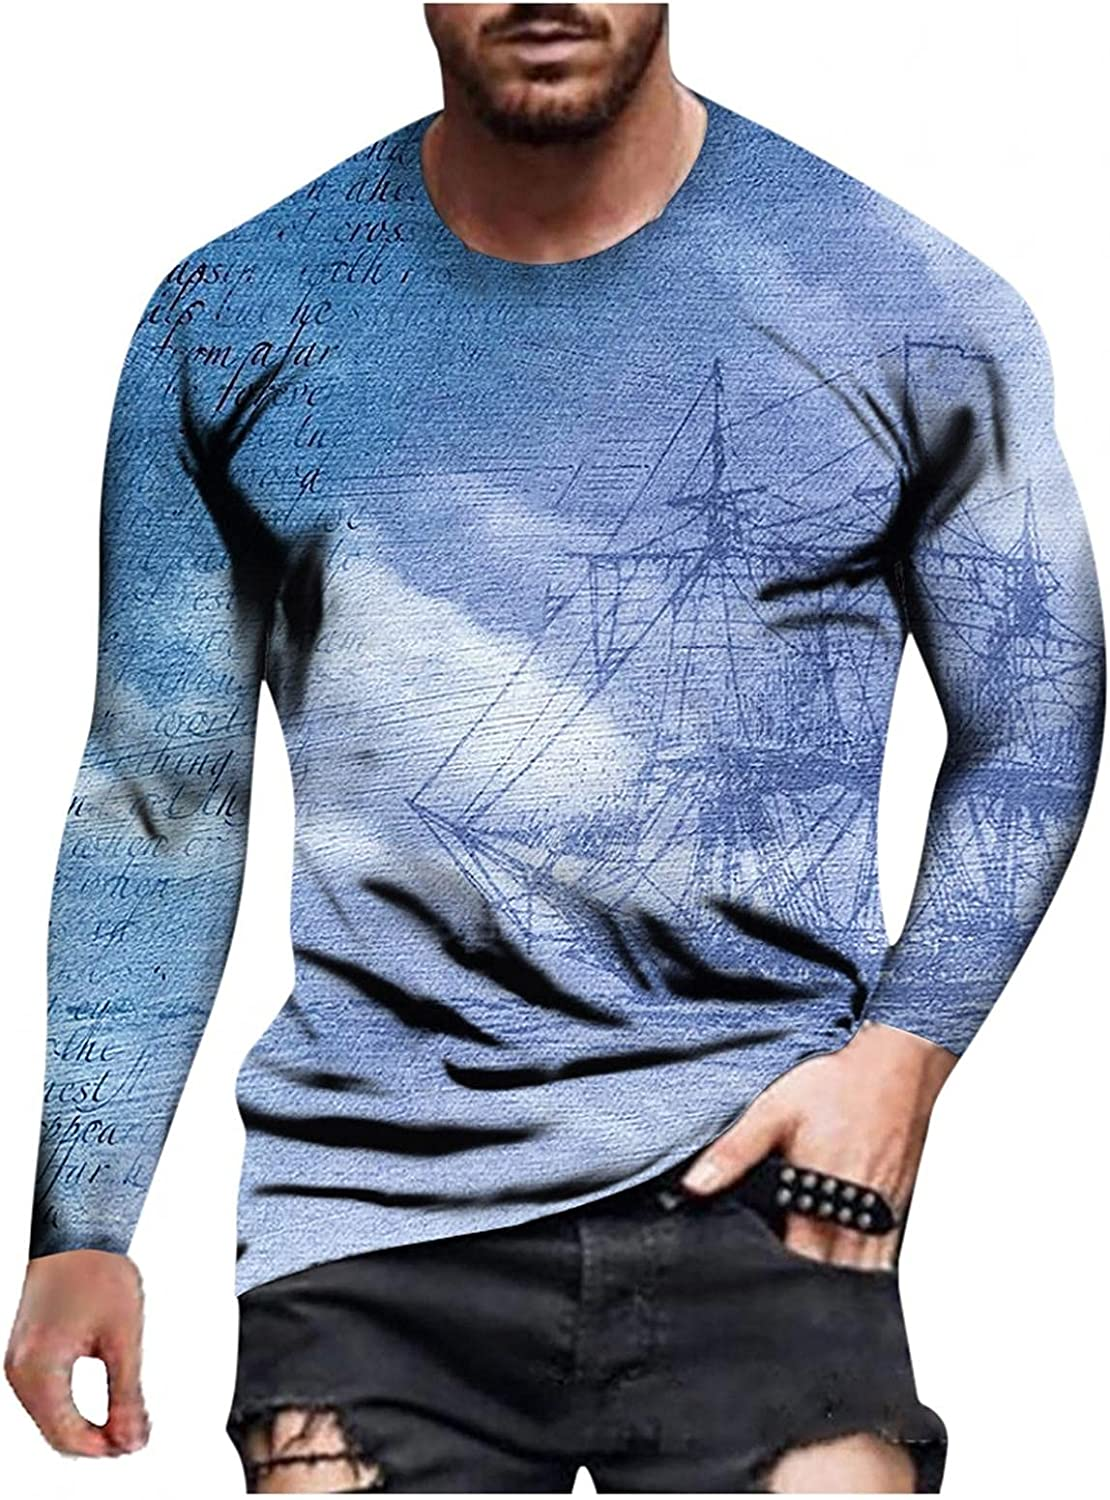 Aayomet T Shirts for Men Fashion Printed Long Sleeve Round Neck T-Shirt Casual Sport Workout Athletic Tee Tops Shirts